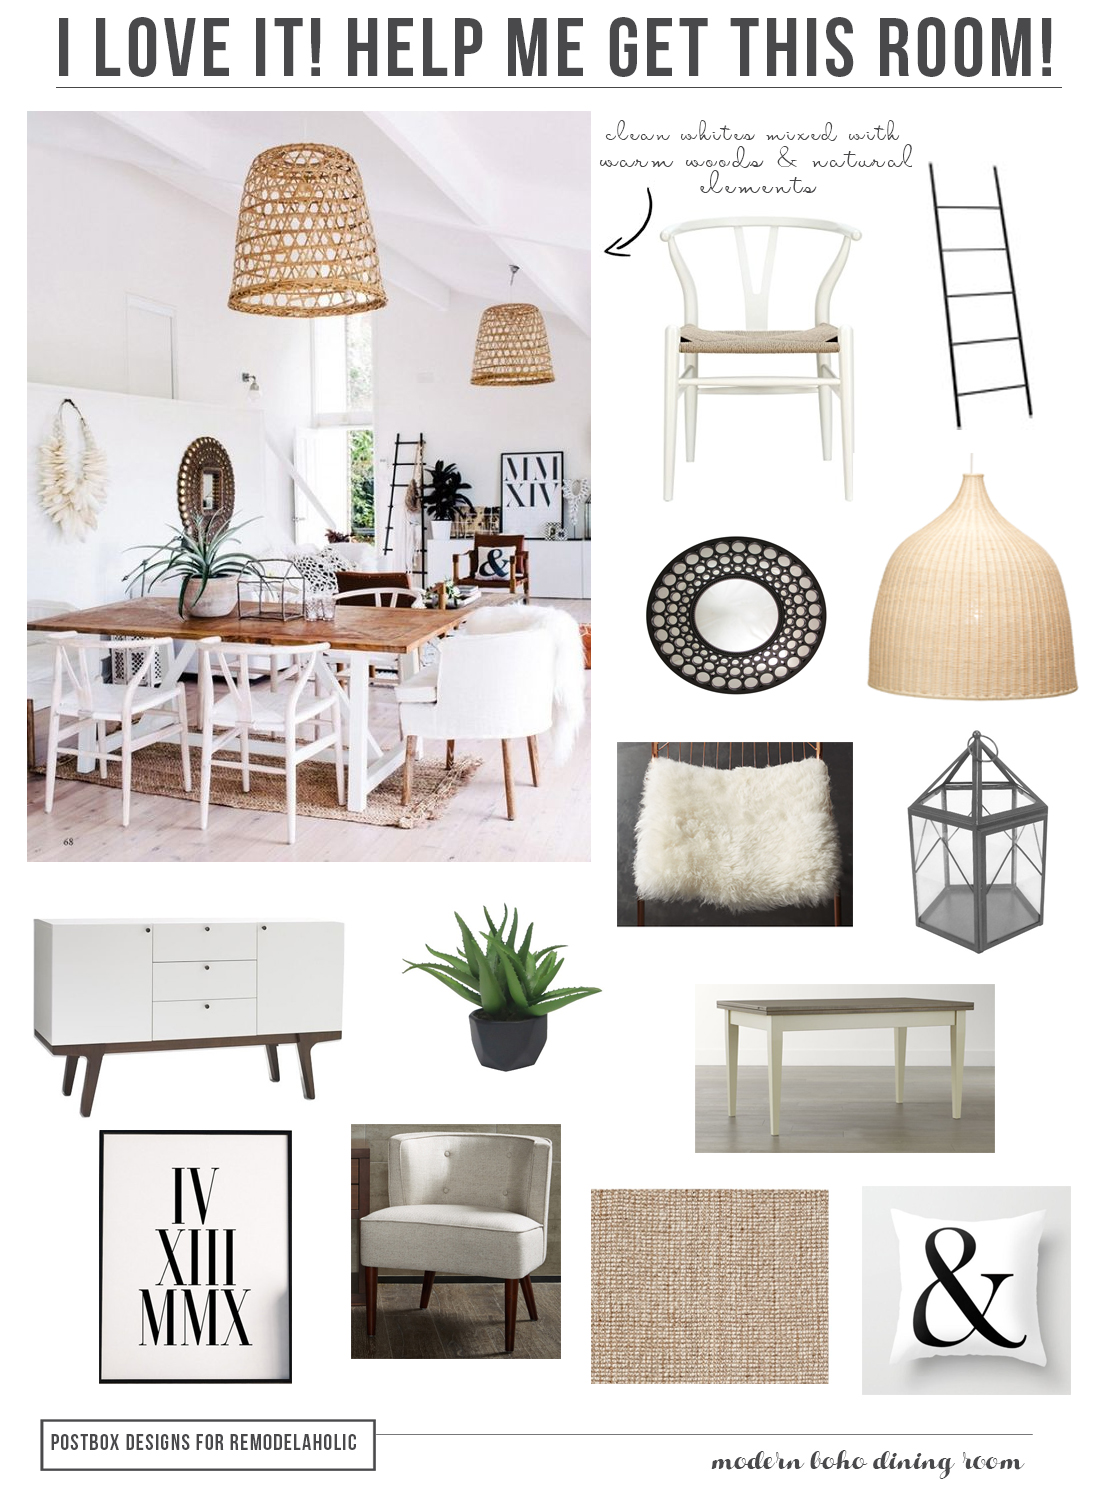 Get The Look: Boho Chic Dining Room Design Inspiration and Tips | Postbox Designs for Remodelaholic.com